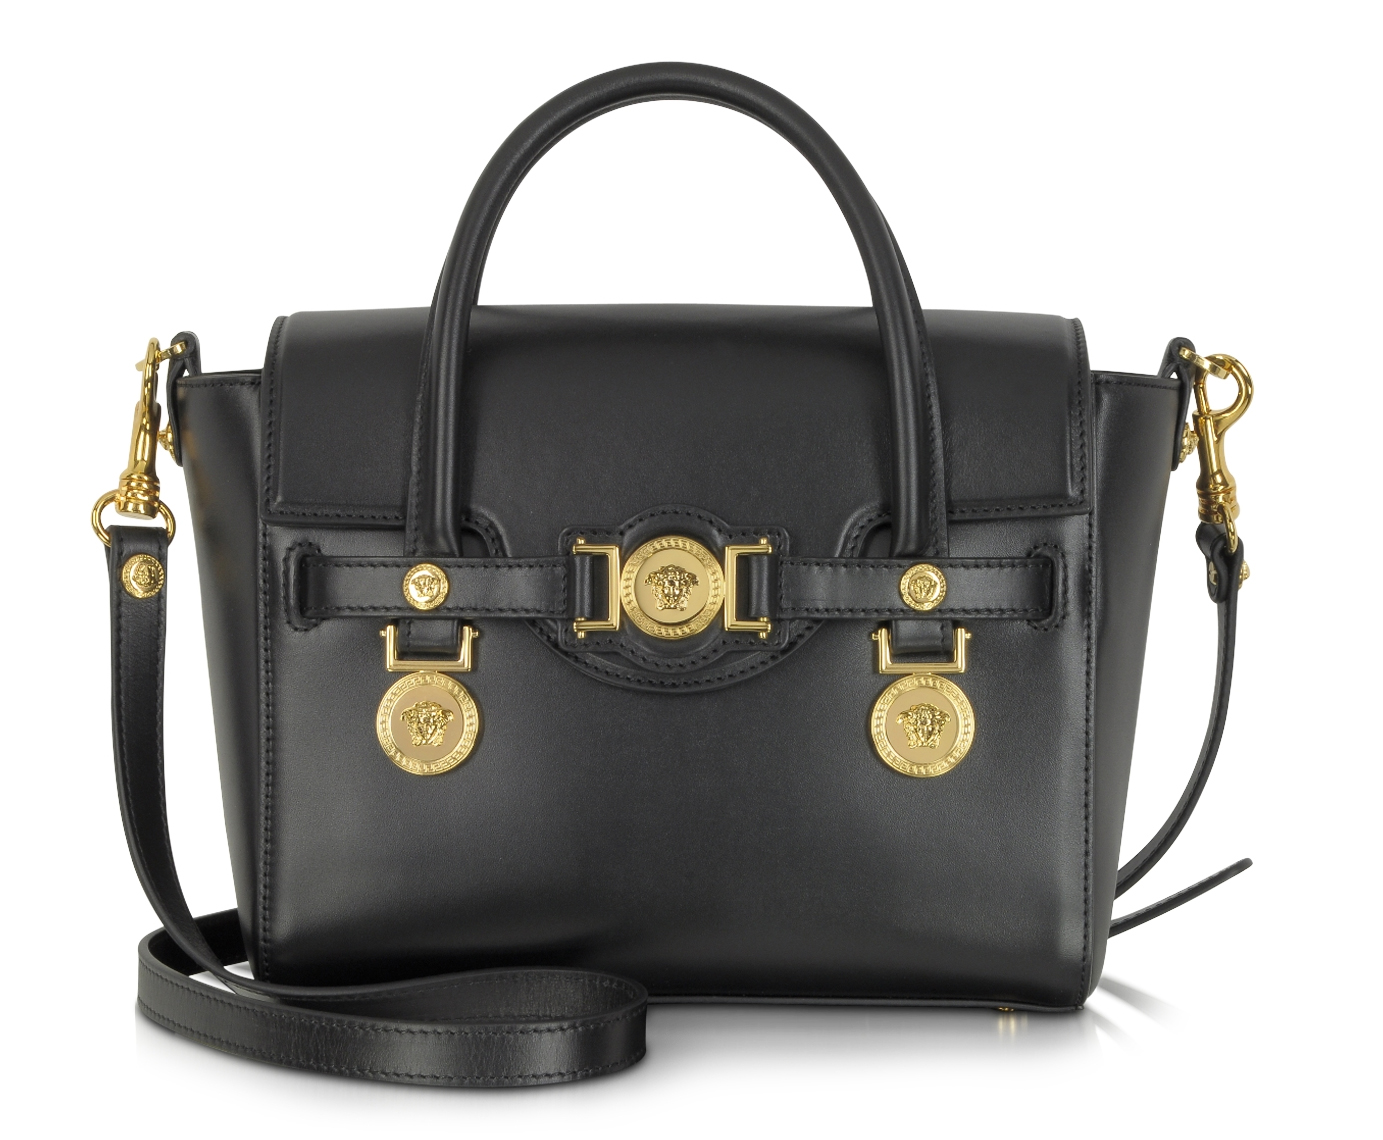 Versace Small Signature Black Leather Handbag